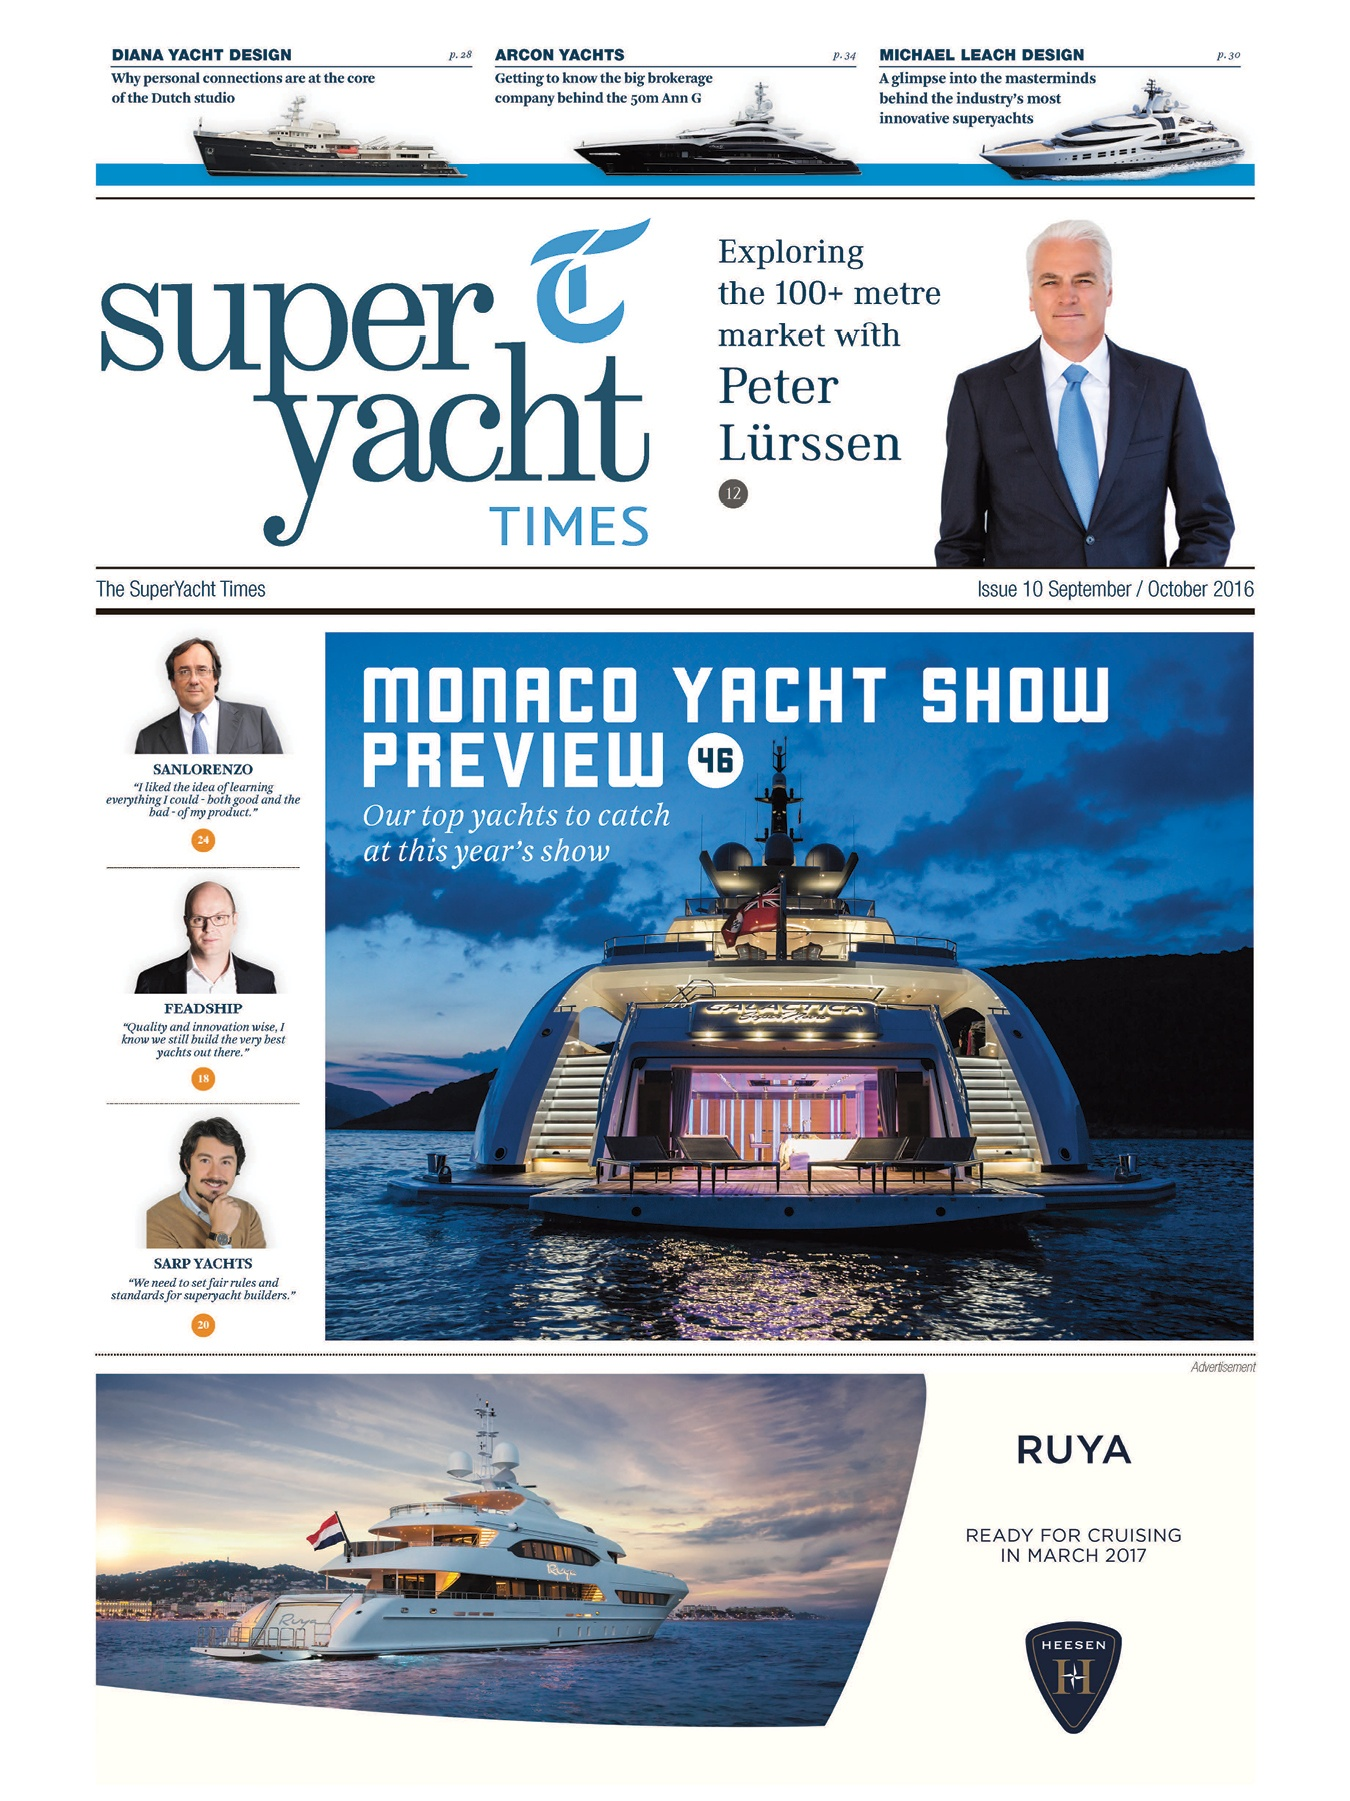 Superyacht Times Oct 2016_2.jpg